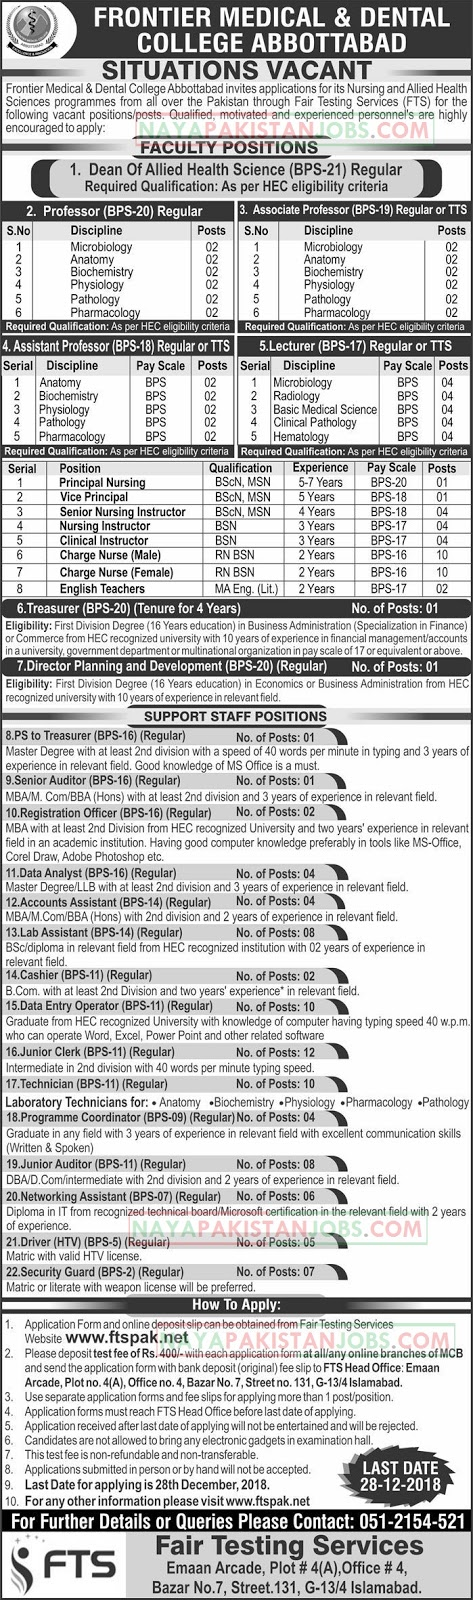 Frontier Medical And Dental College Abbottabad Jobs 9 December 2018 - Naya Pakistan